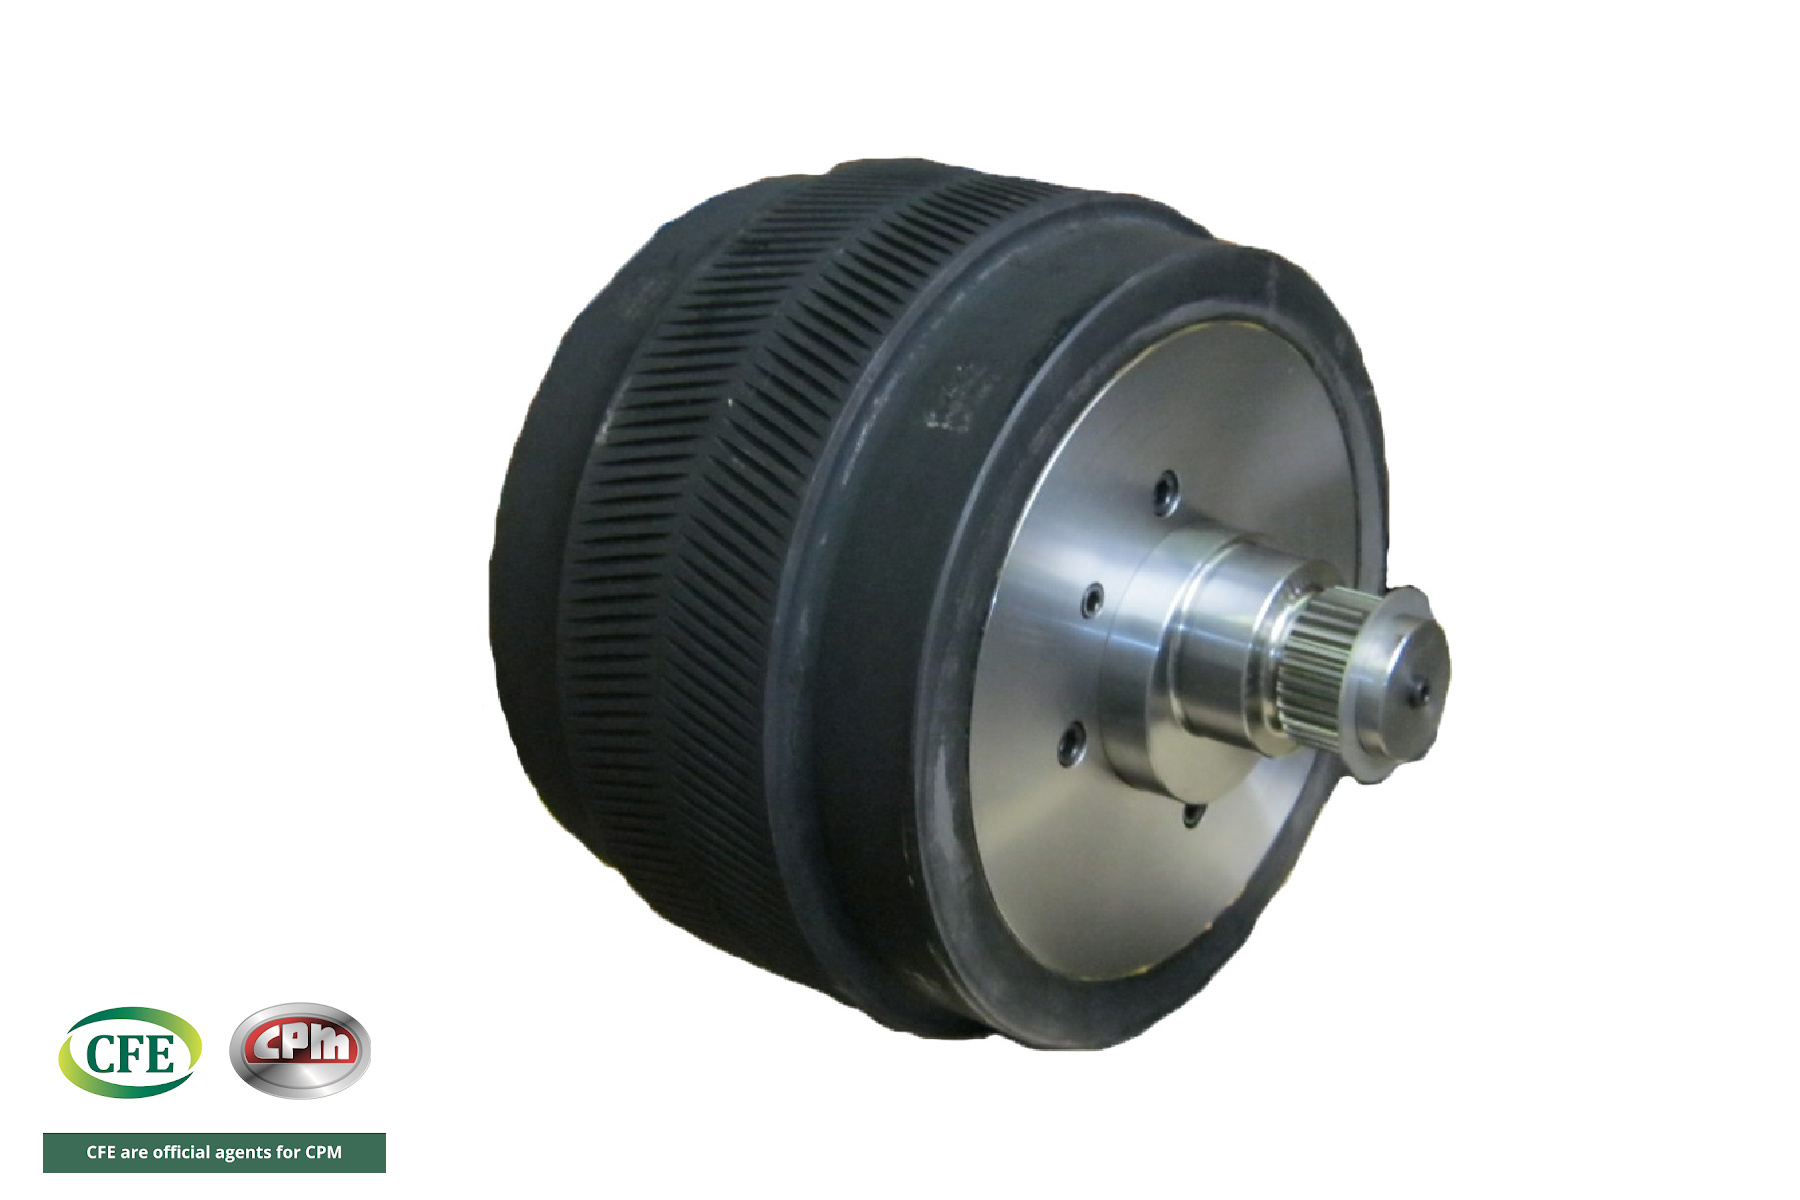 CFE Spare Parts 6 x 4